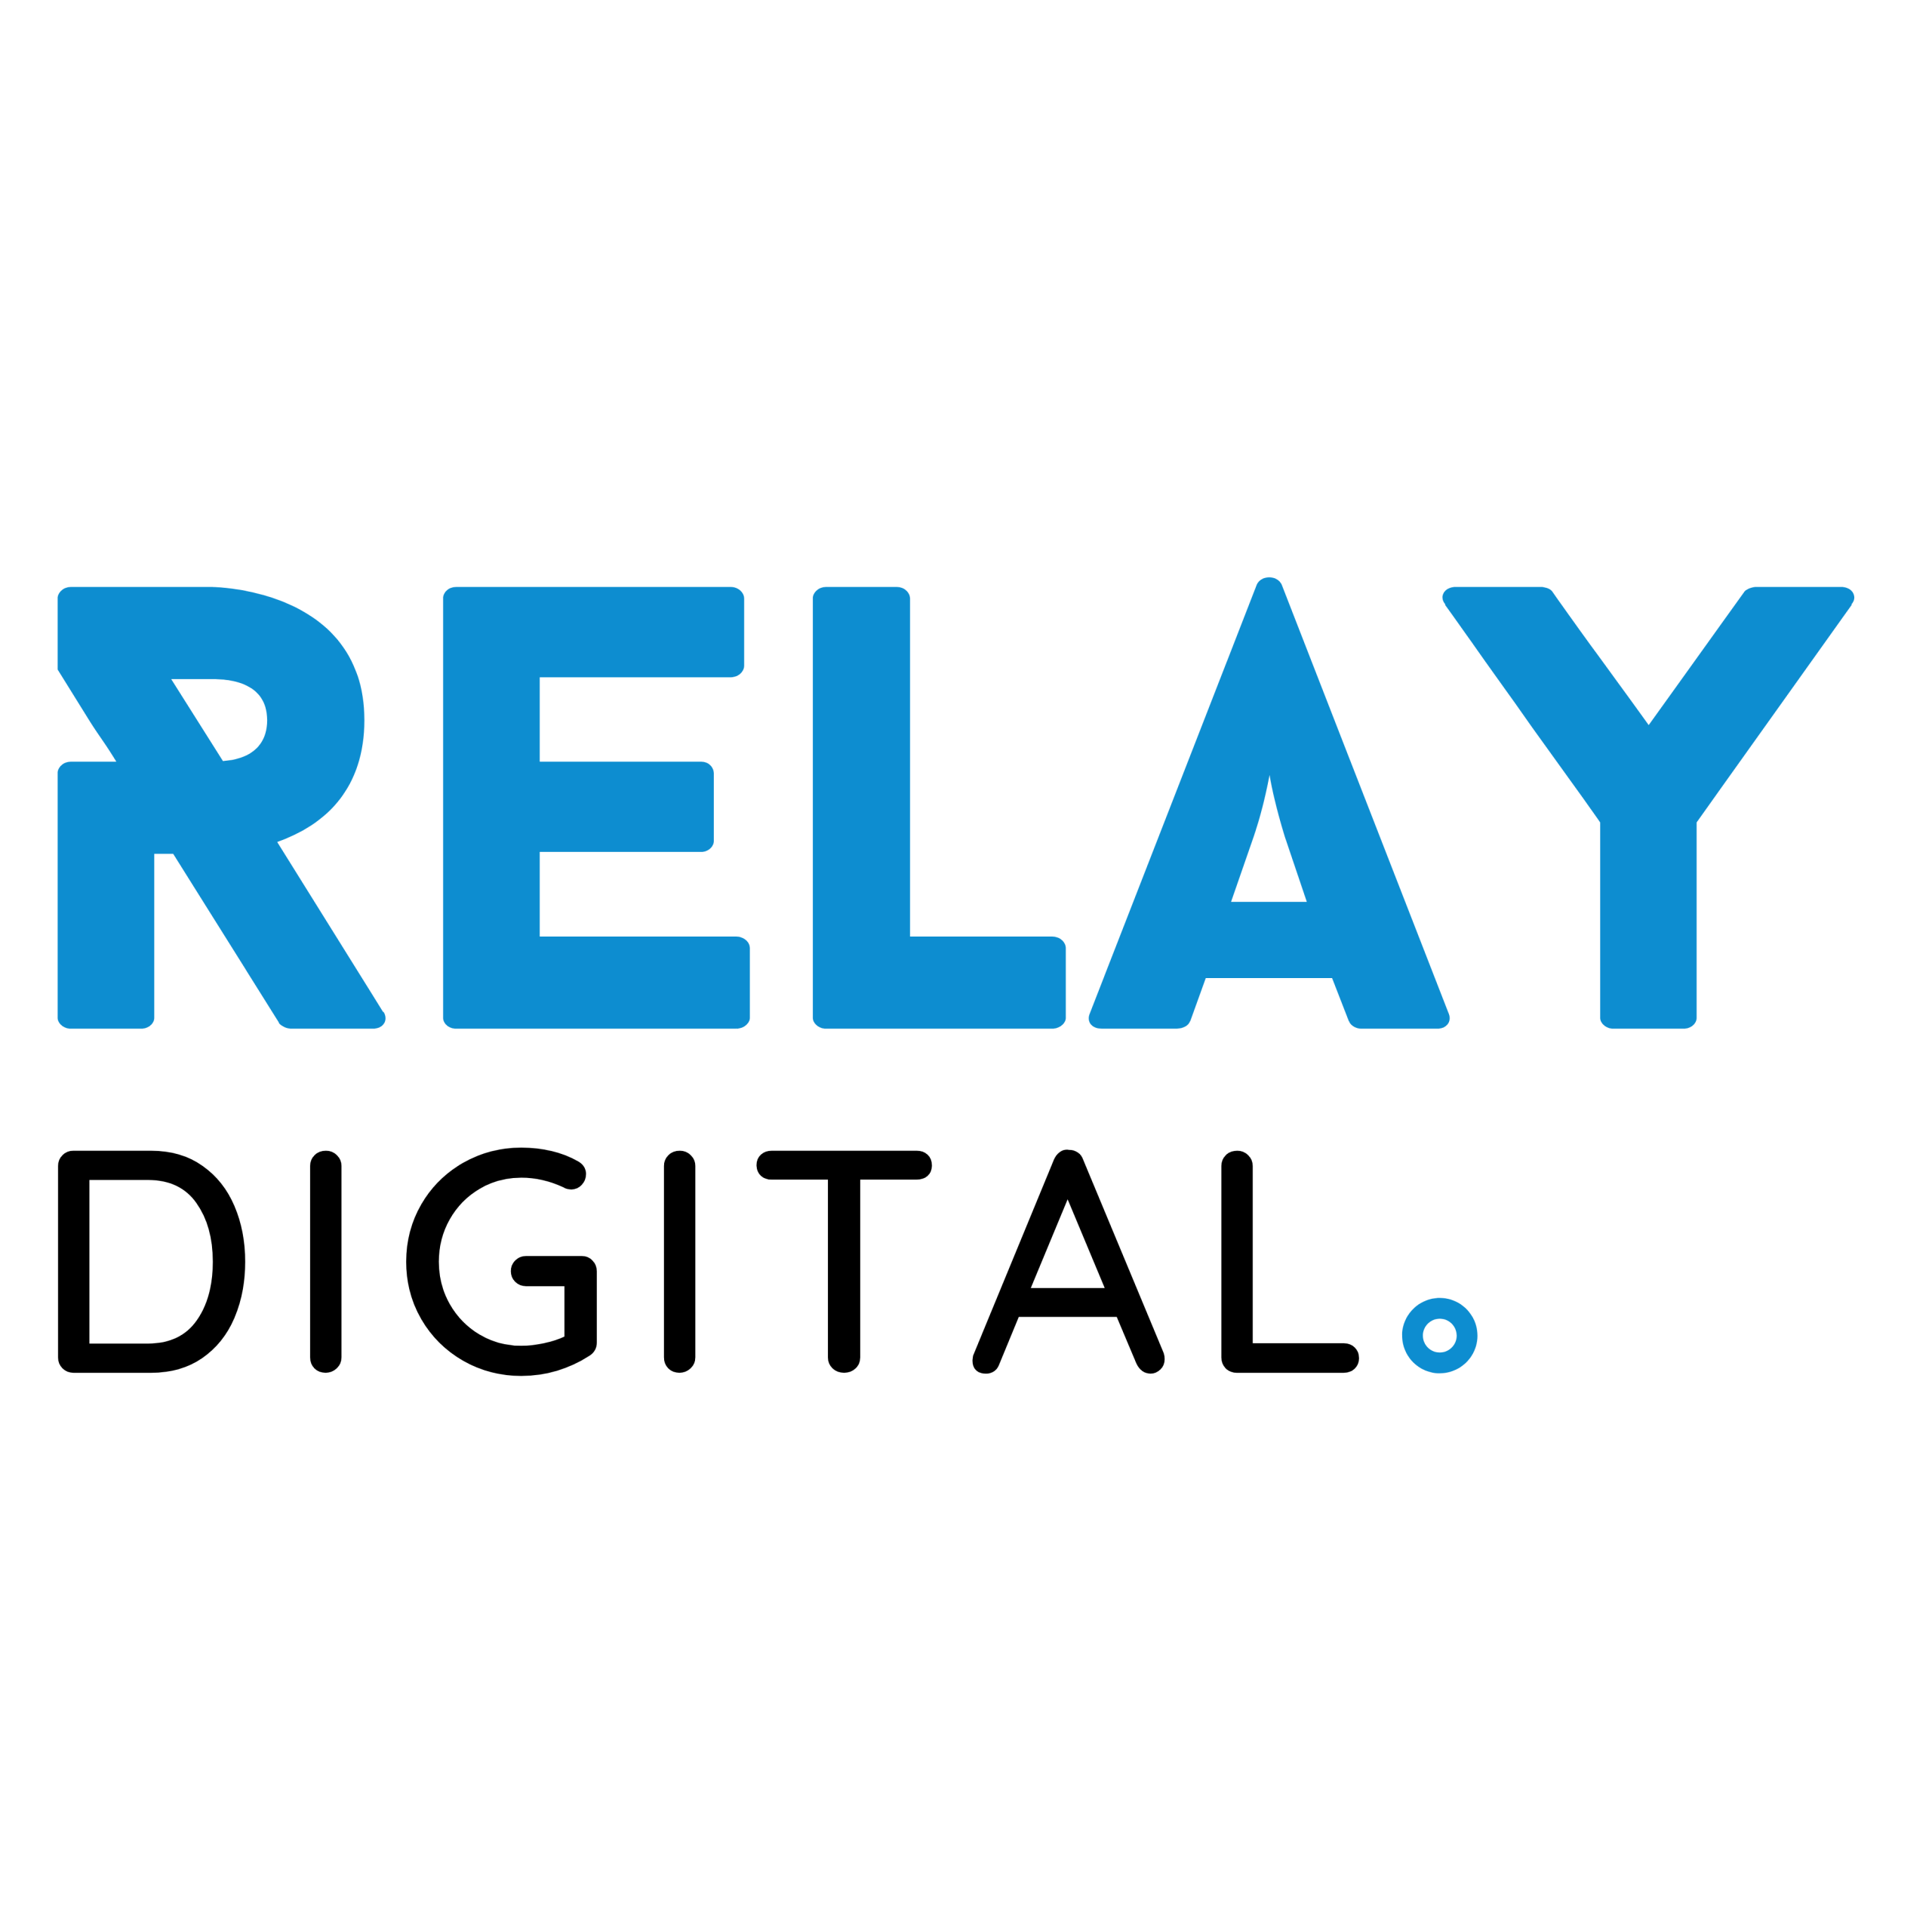 Relay Digital